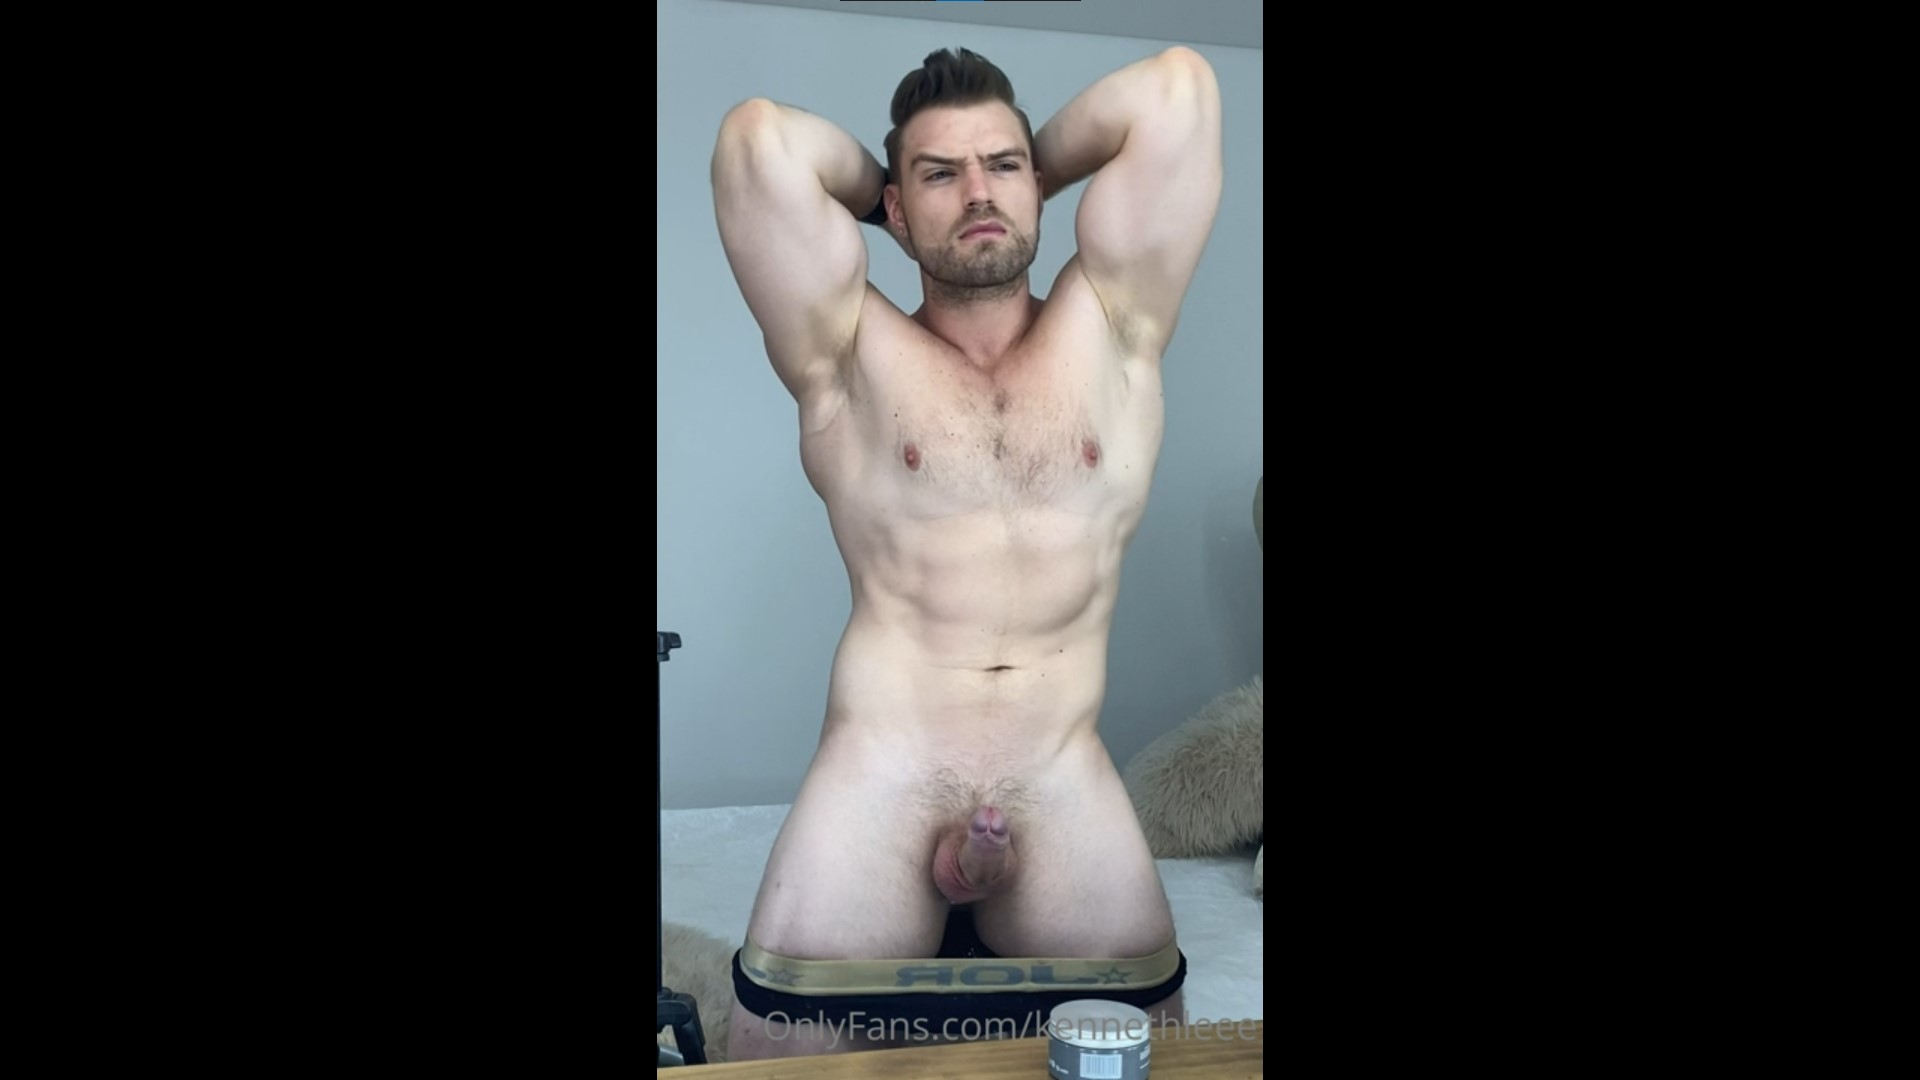 Jerking off hard till I cum - Kenneth Lee (kennethleee)